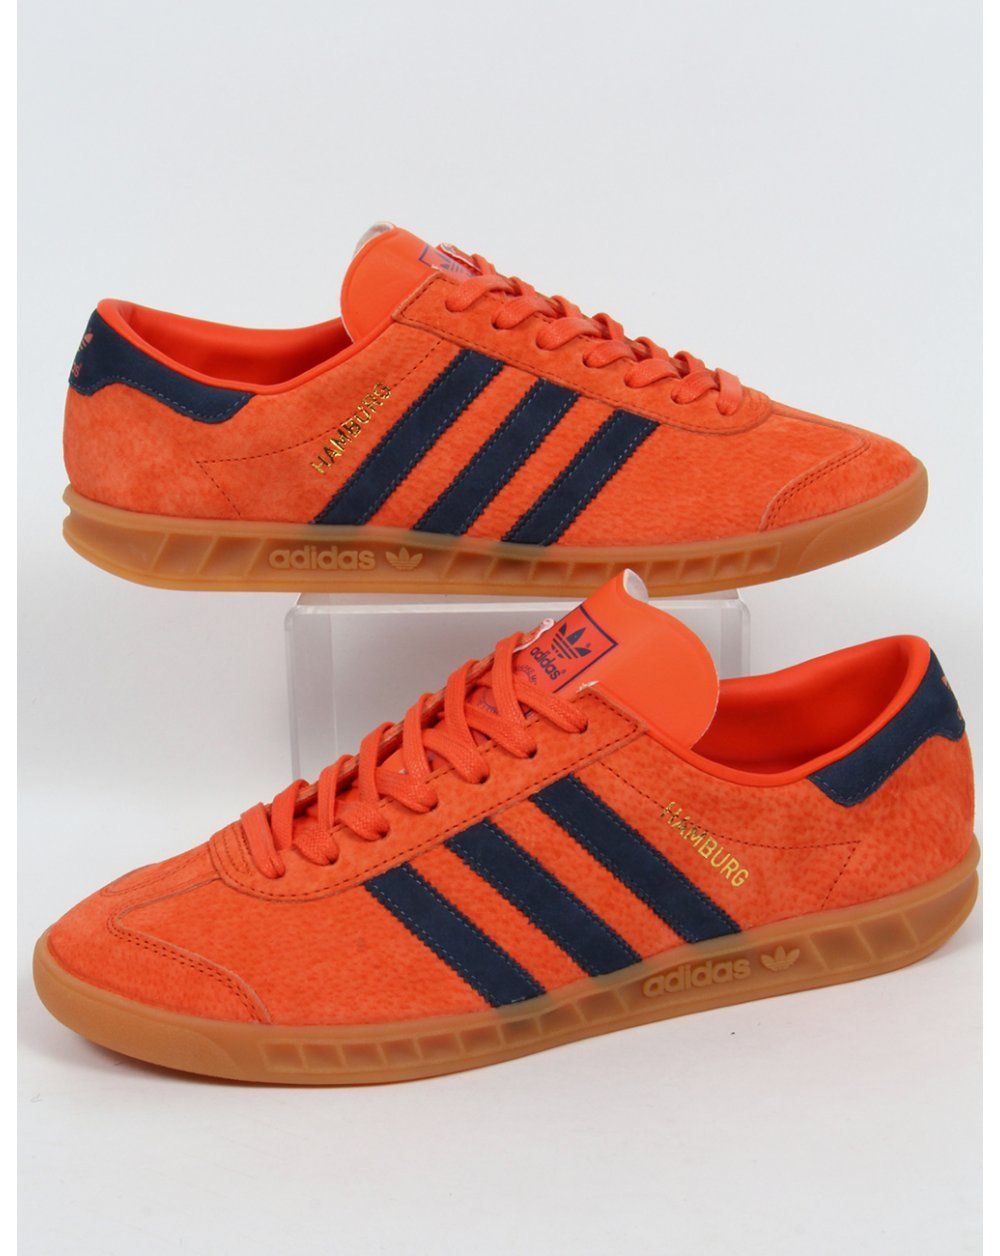 de ahora en adelante insecto Grifo  adidas originals hamburg blue and orange - 63% remise -  www.muminlerotomotiv.com.tr